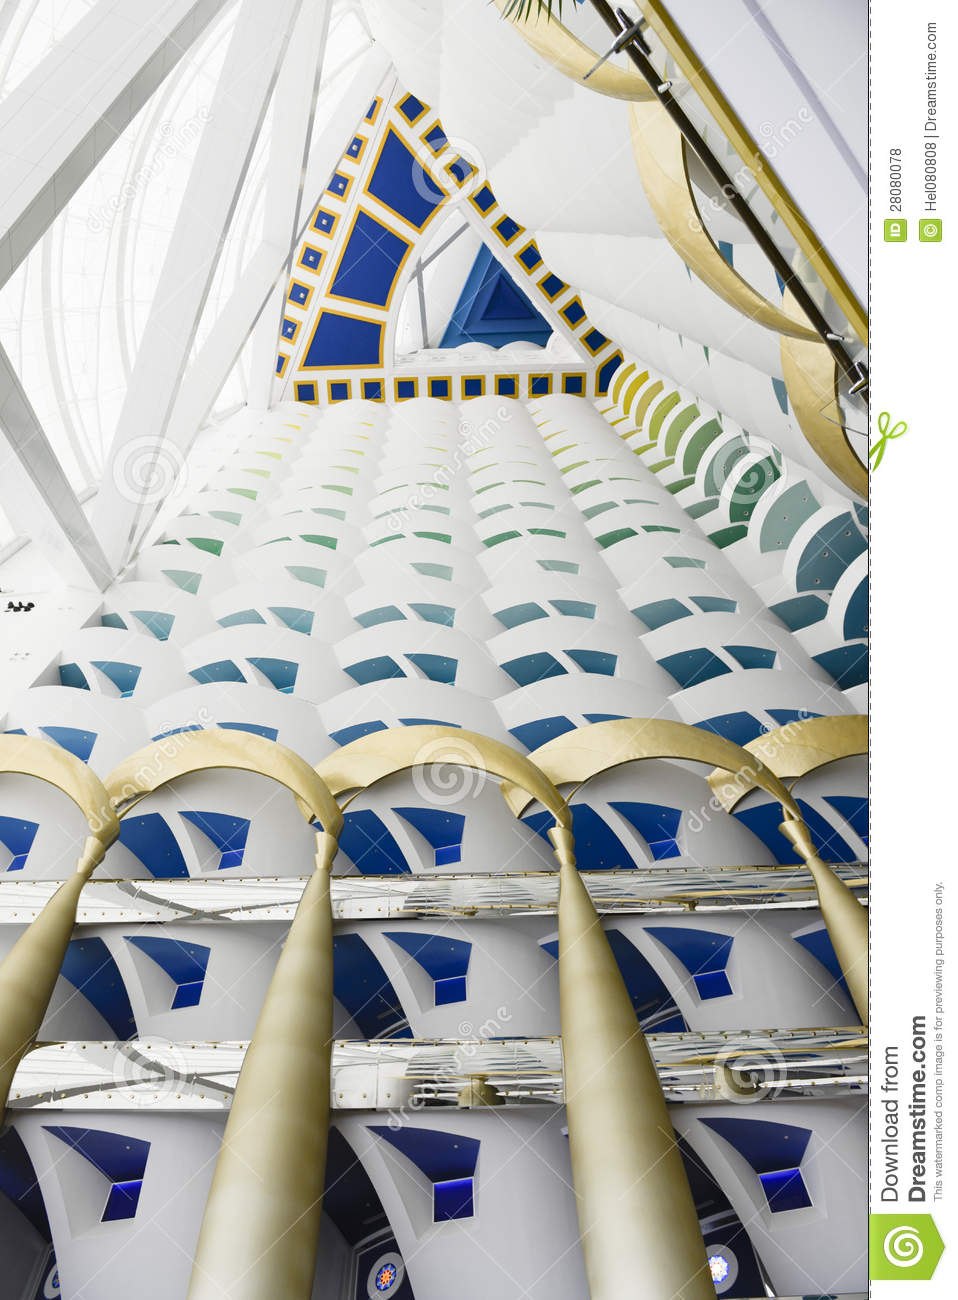 Burj al arab dubai royalty free stock photos image for Dearest hotel in dubai